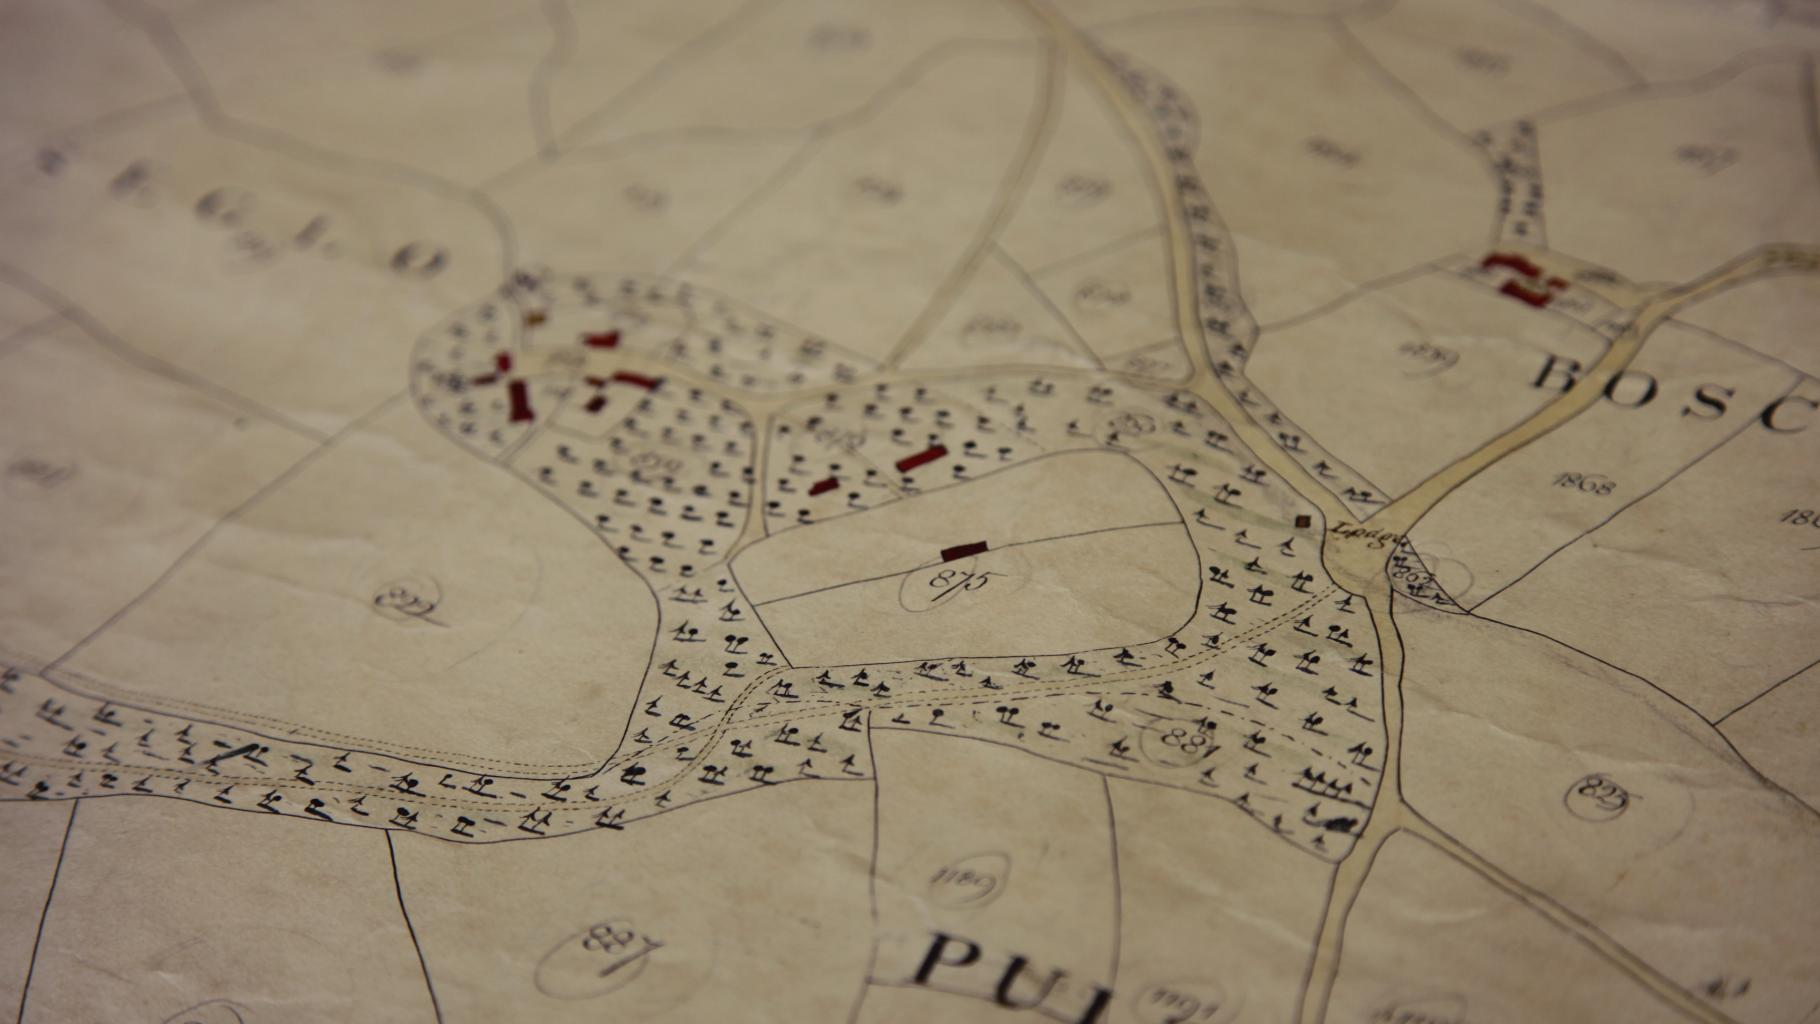 1840 Tithe Map of Trengwainton, Madron near Penzance, © Cornwall Records Office